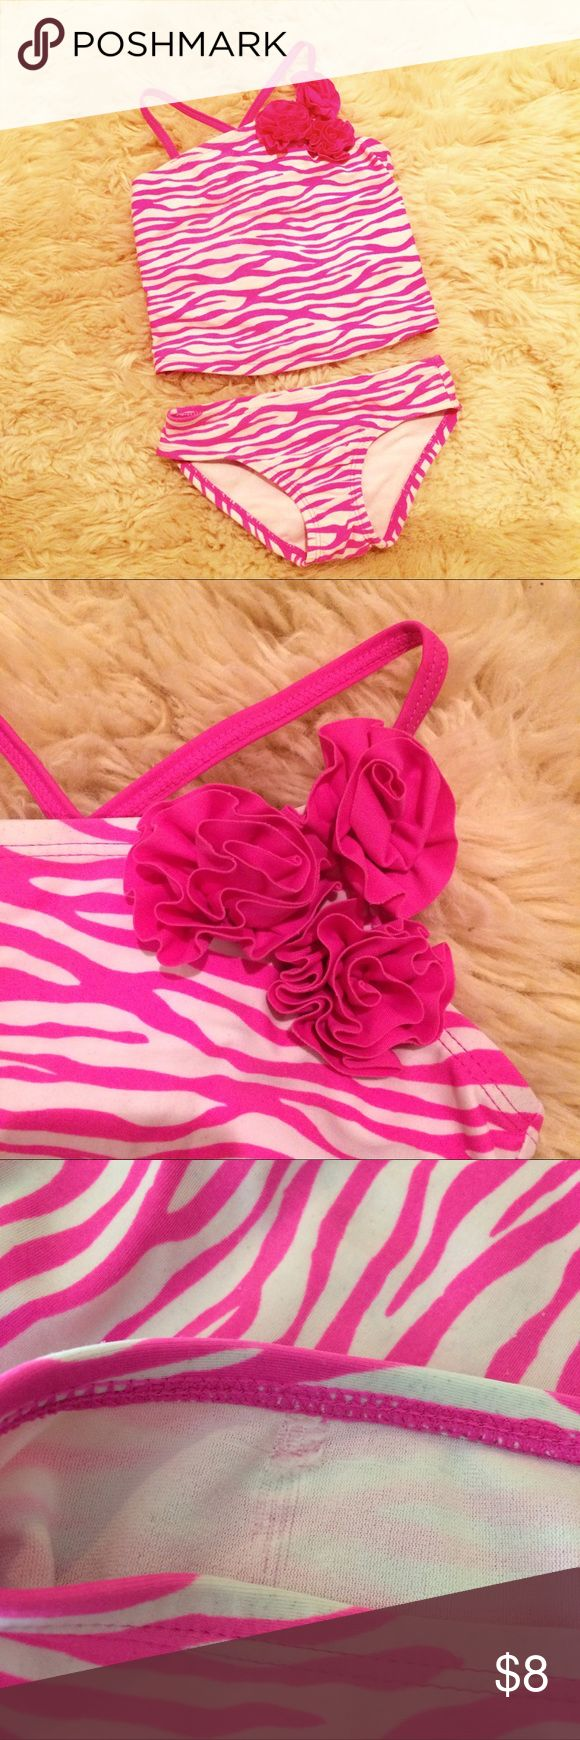 Girls' Punk Zebra Stripes Tankini Bathing Suit Super cute 2 Piece tankini Swimsuit in gently used condition. There is a flaw on the inside of the bottom that is not noticeable when worn (see 3rd pic) size 4 Swim